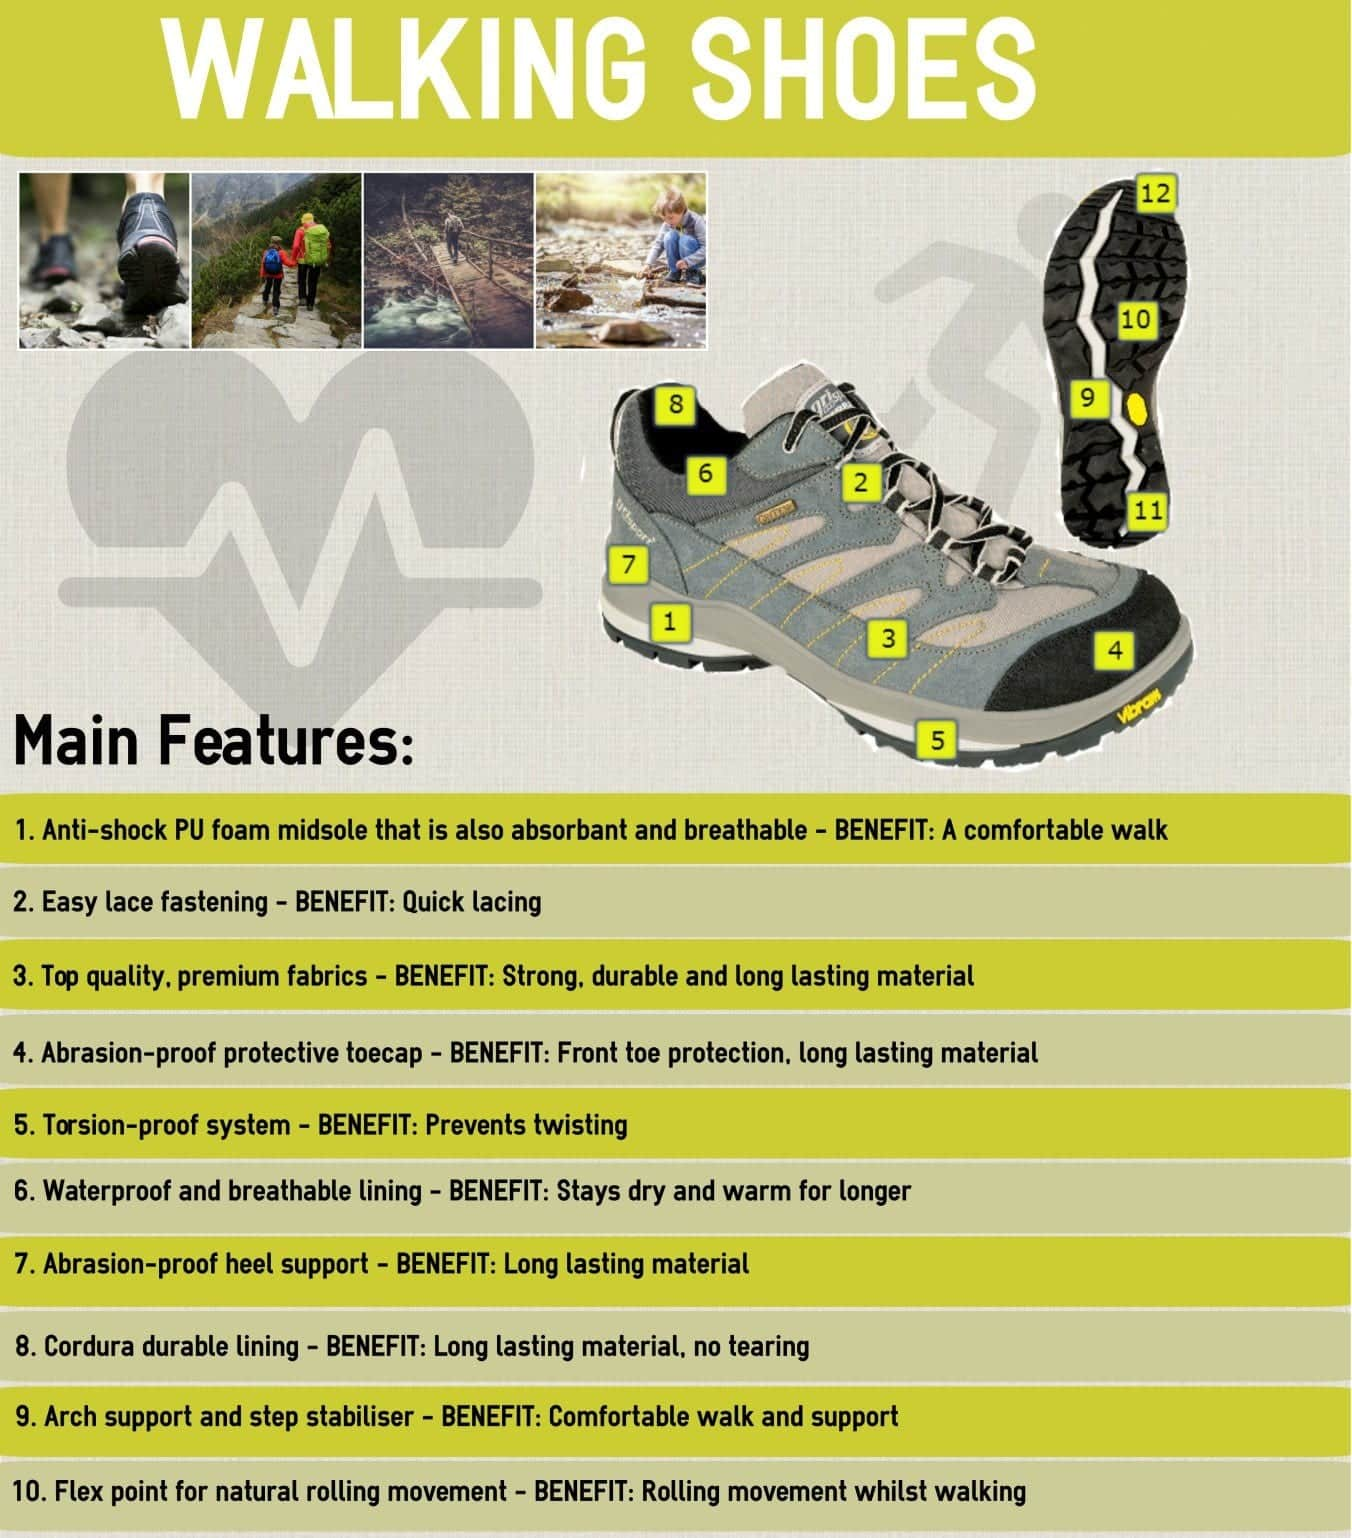 Walking-Shoe-Info Best Shoe Brands For Walking- Top 12 Walking Shoes for Women